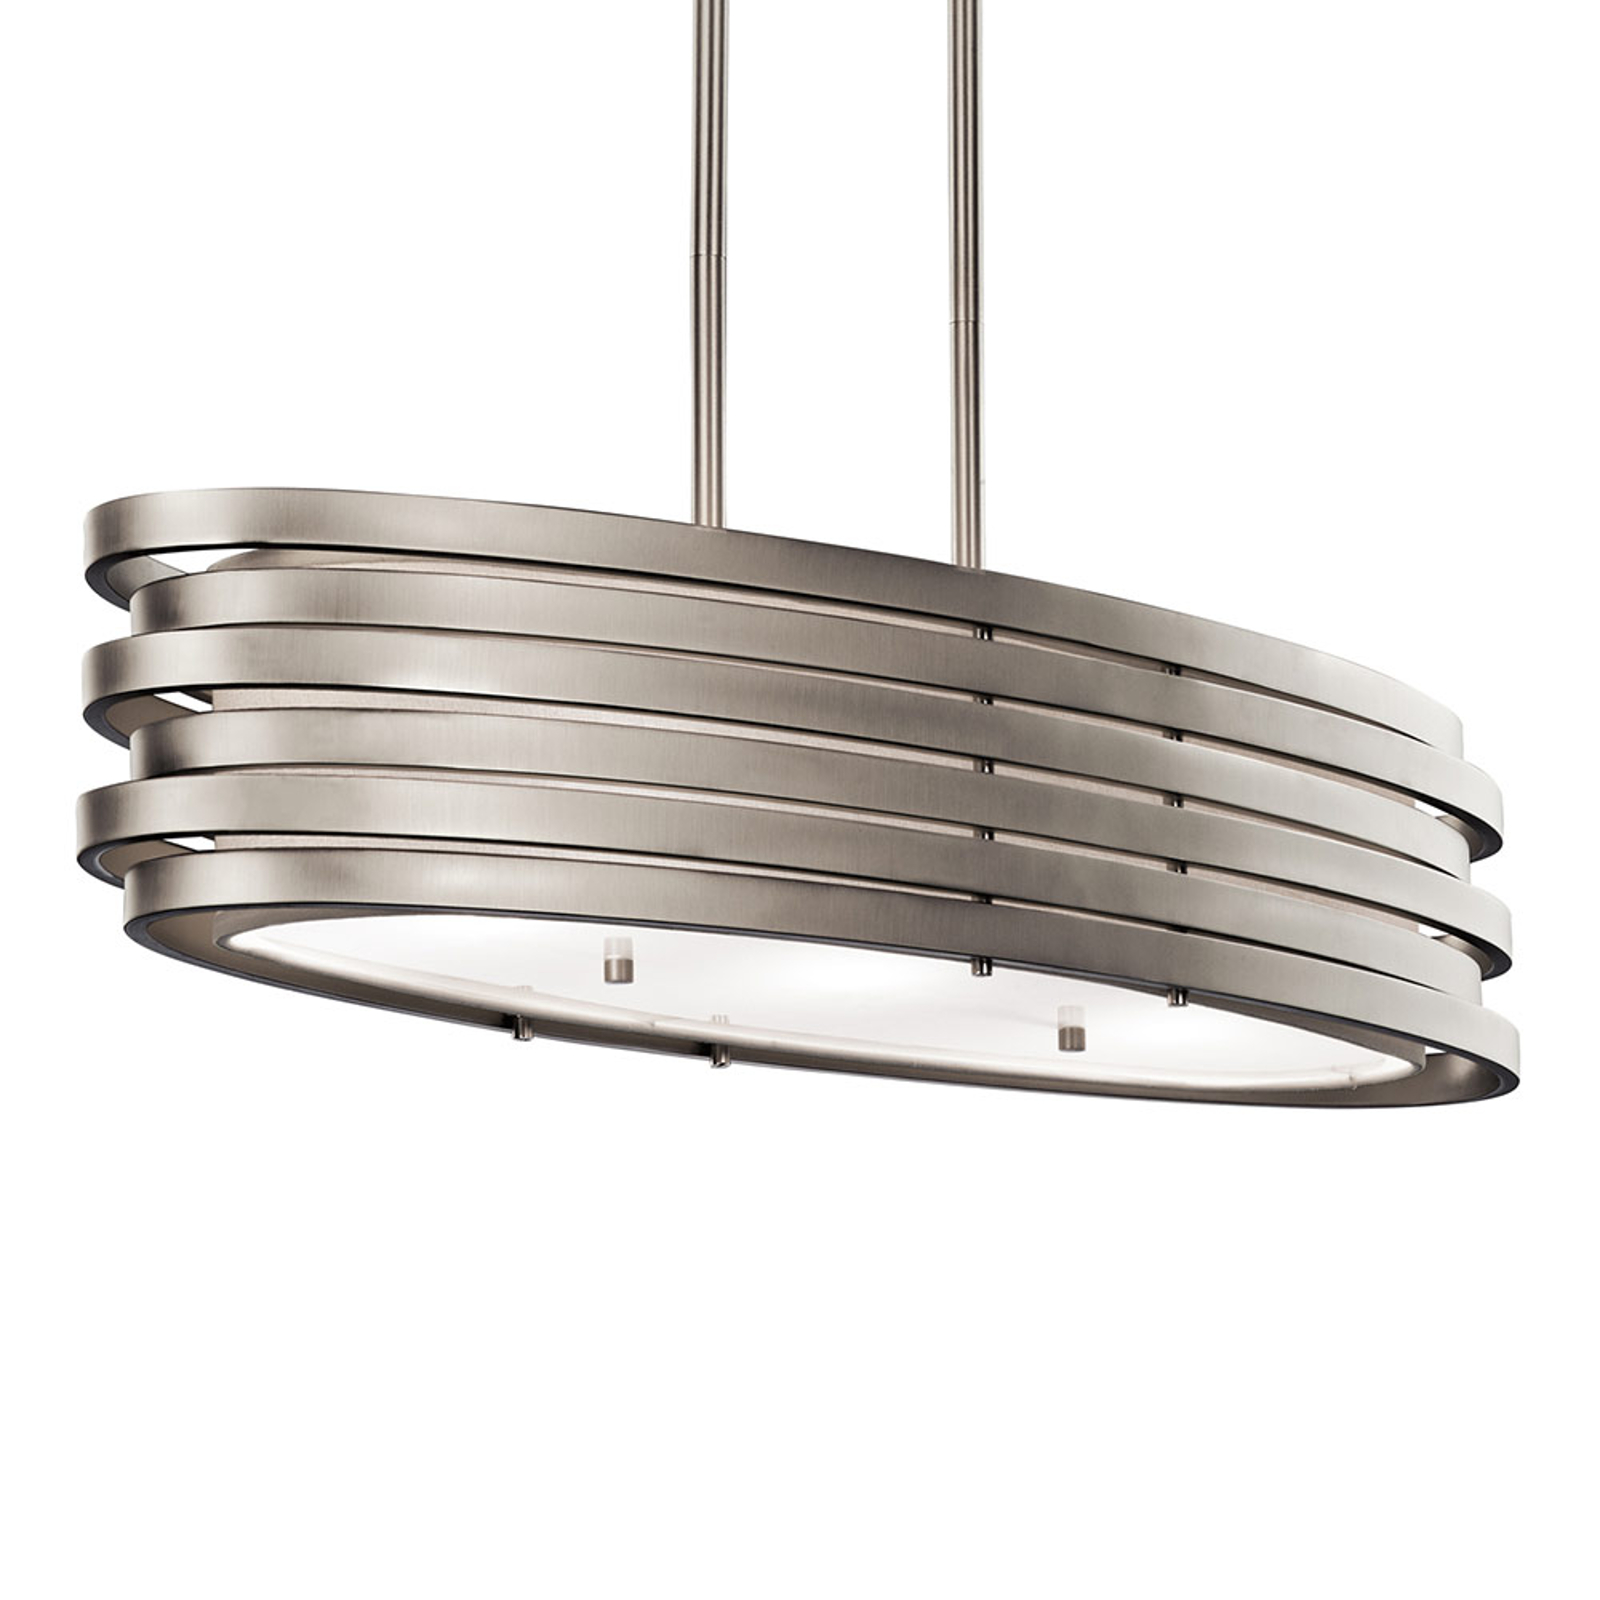 Hanglamp Roswell, ovale vorm